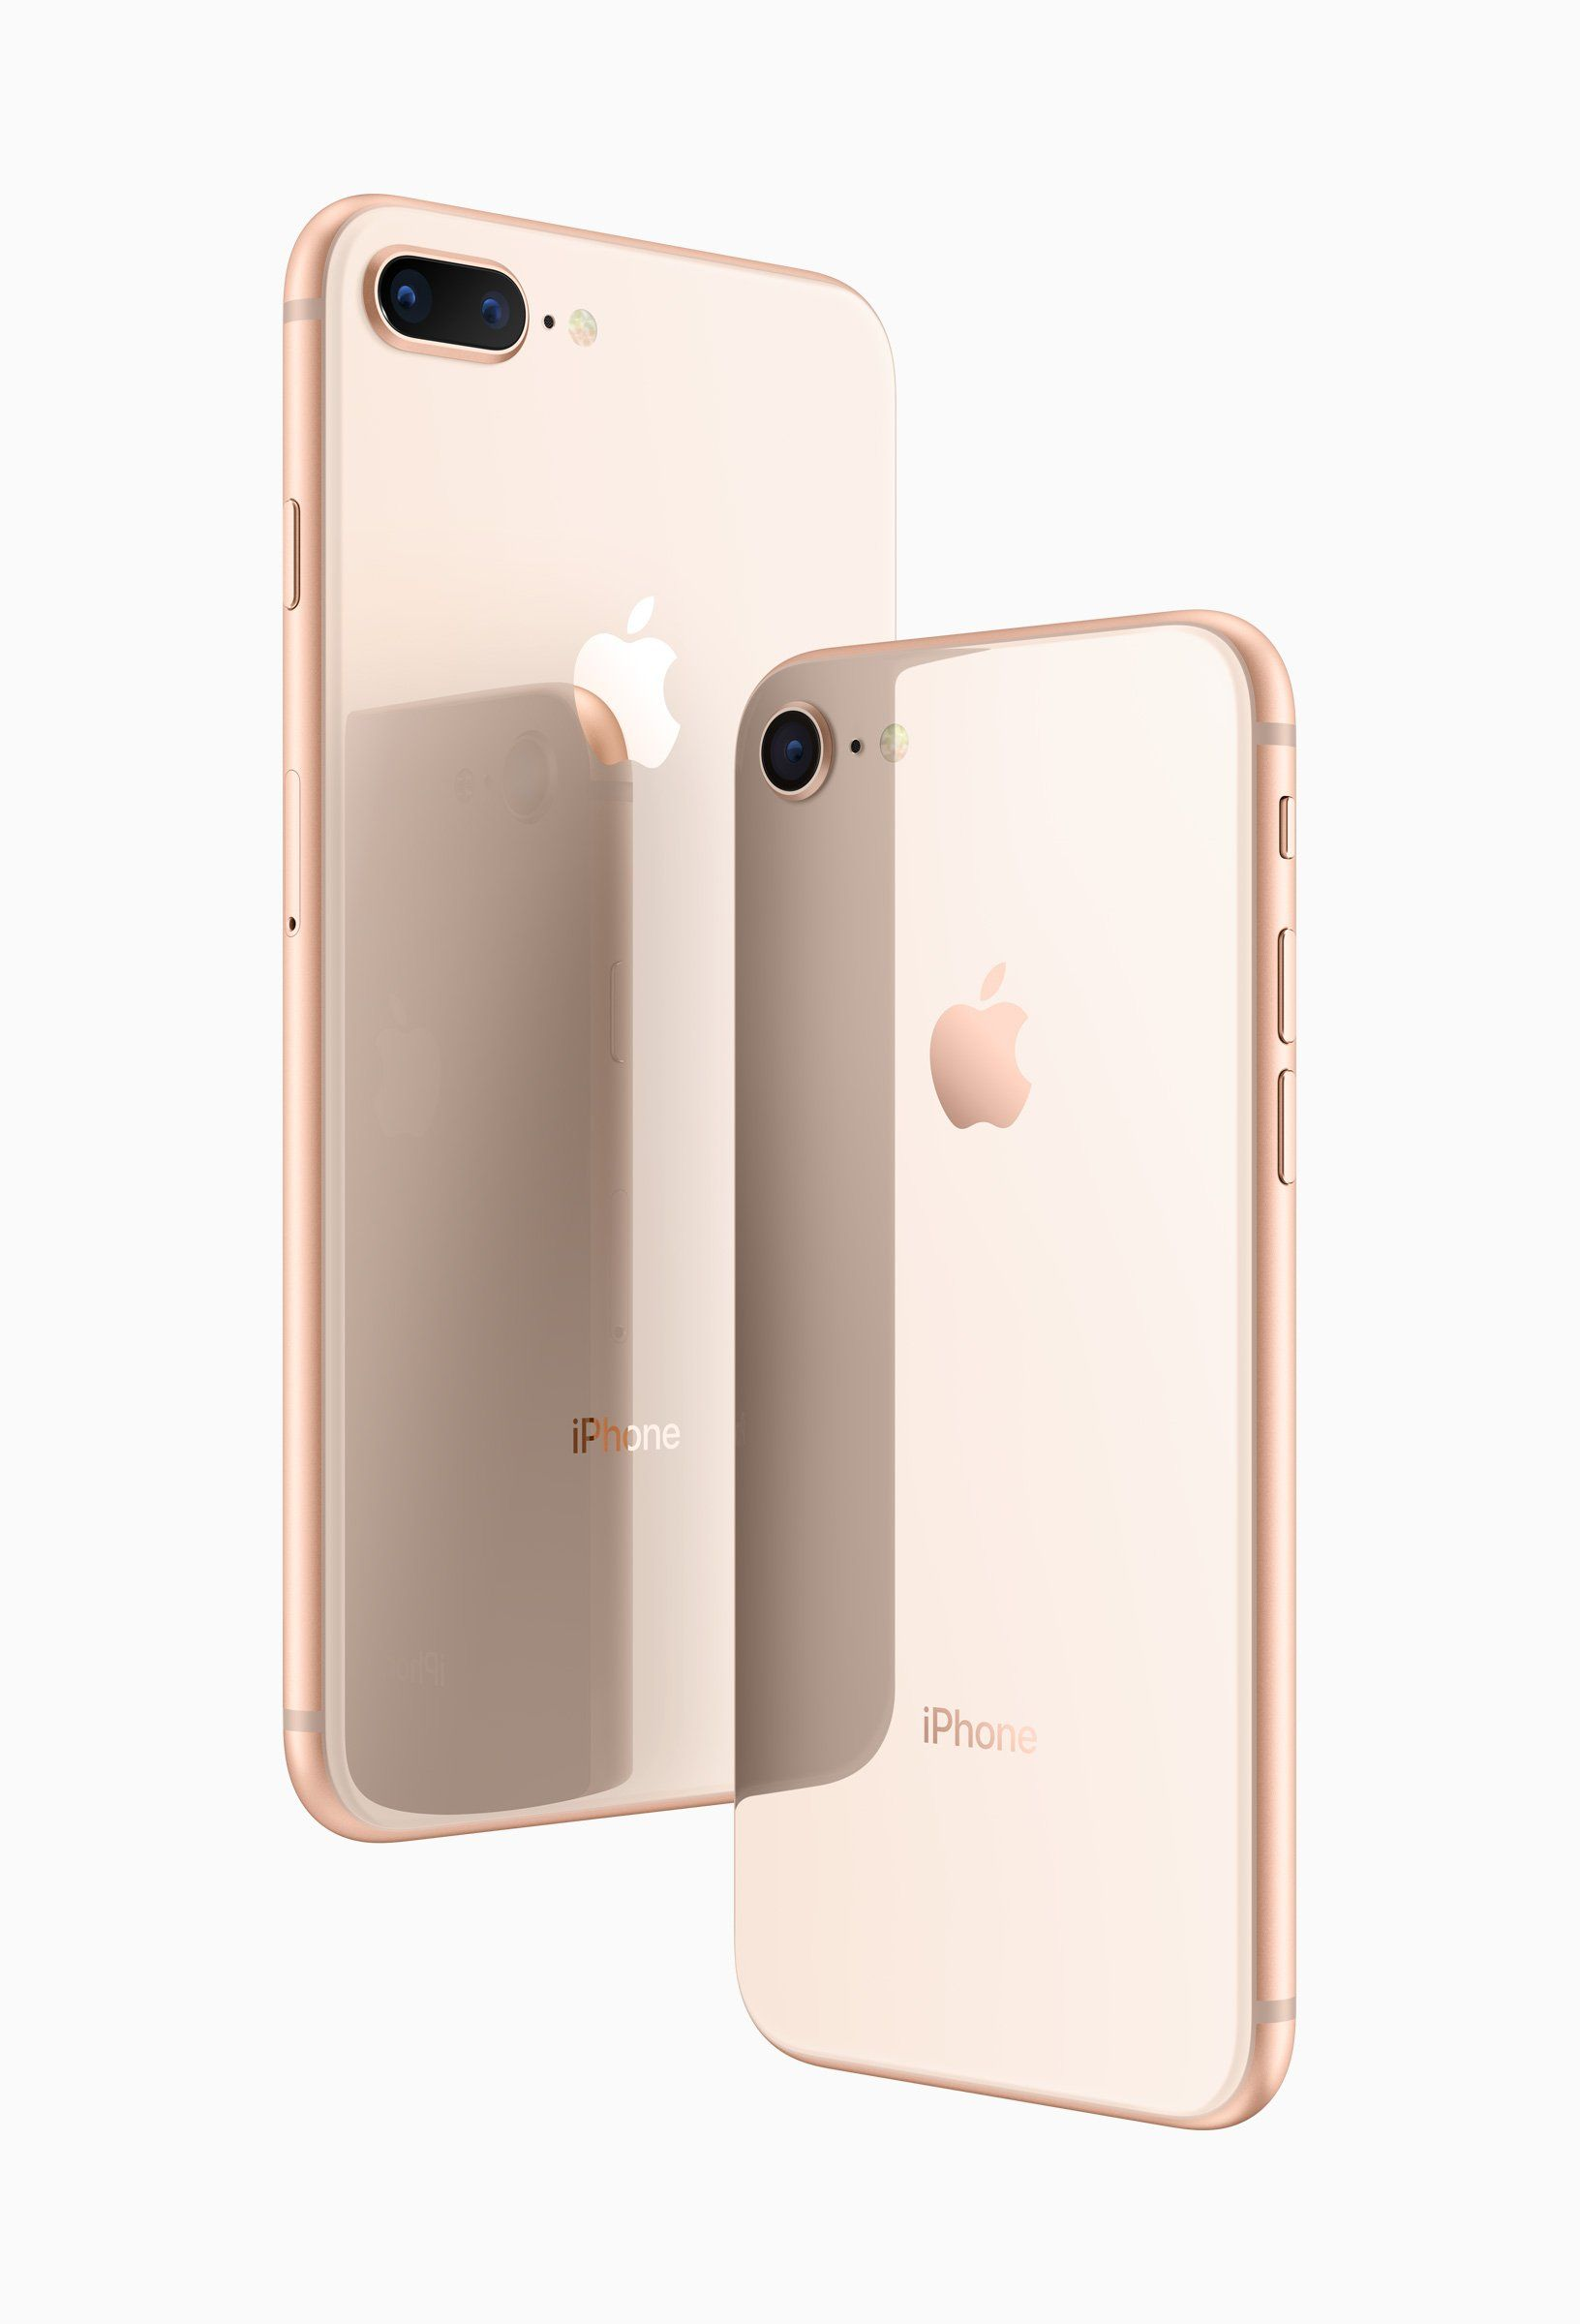 Apple S New Iphones Finally Come With Fast Charging But It Ll Cost You Extra New Iphone 8 Apple Phone Iphone 8 Plus